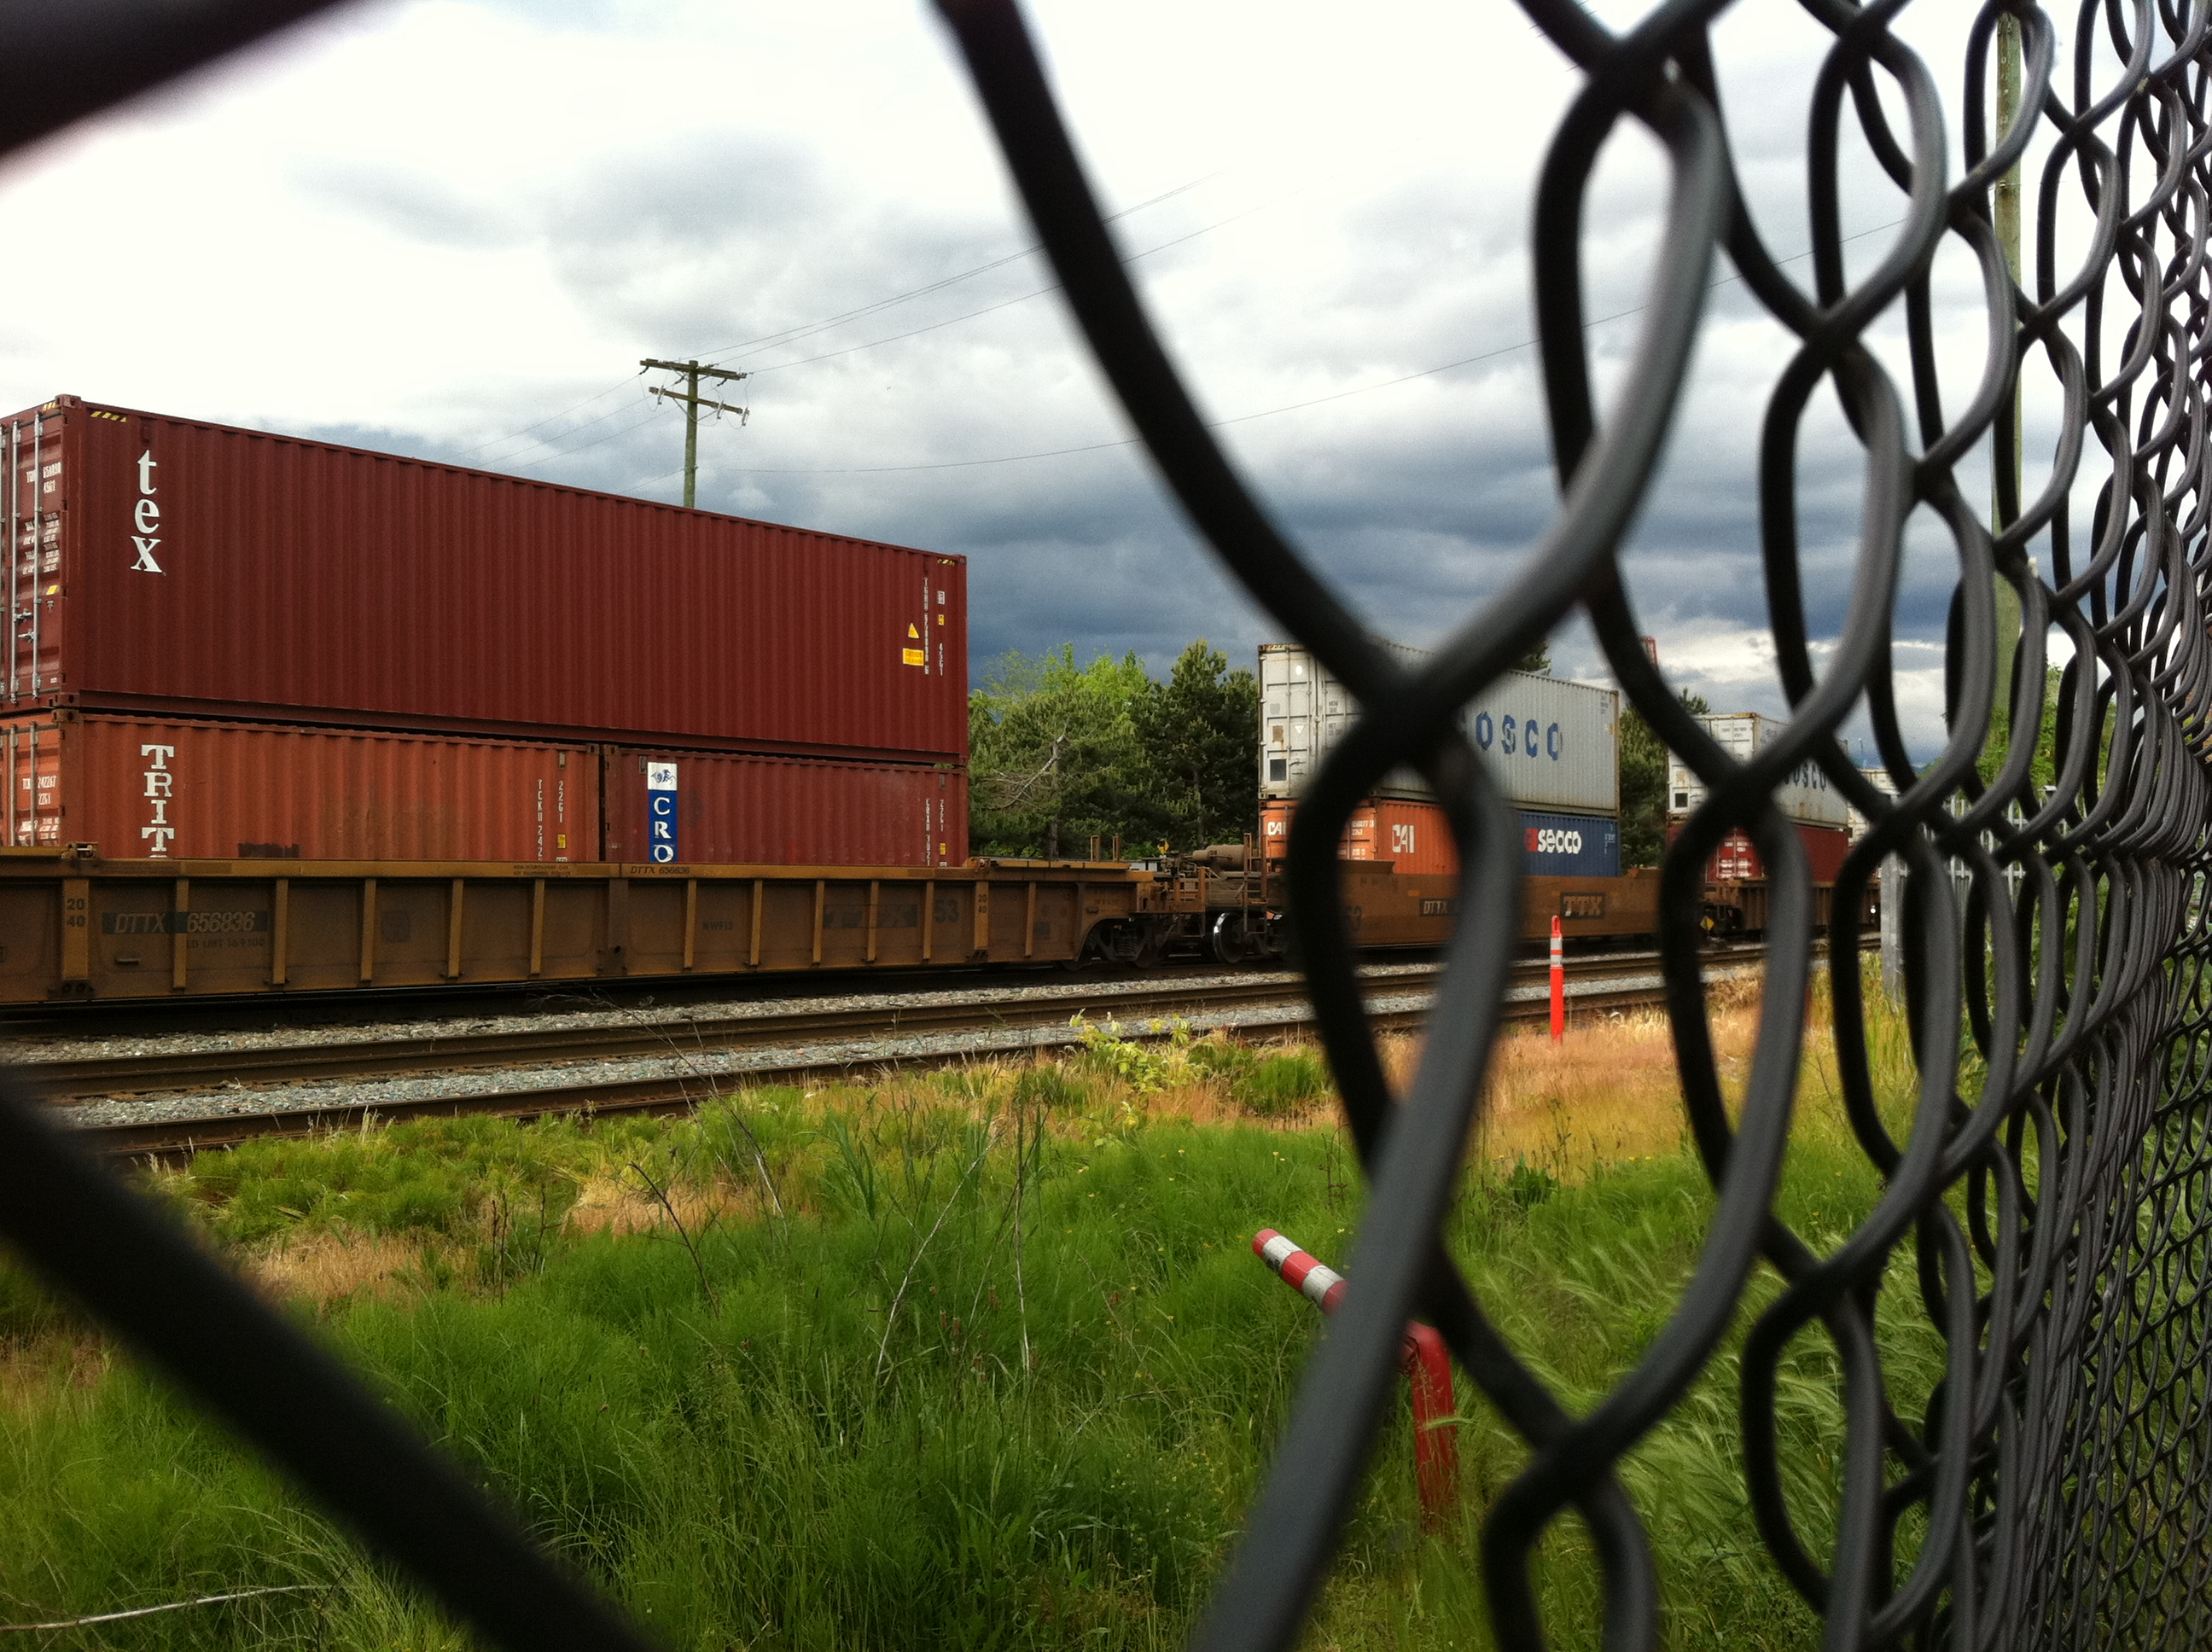 A Look Through the Train Yard at 5pm